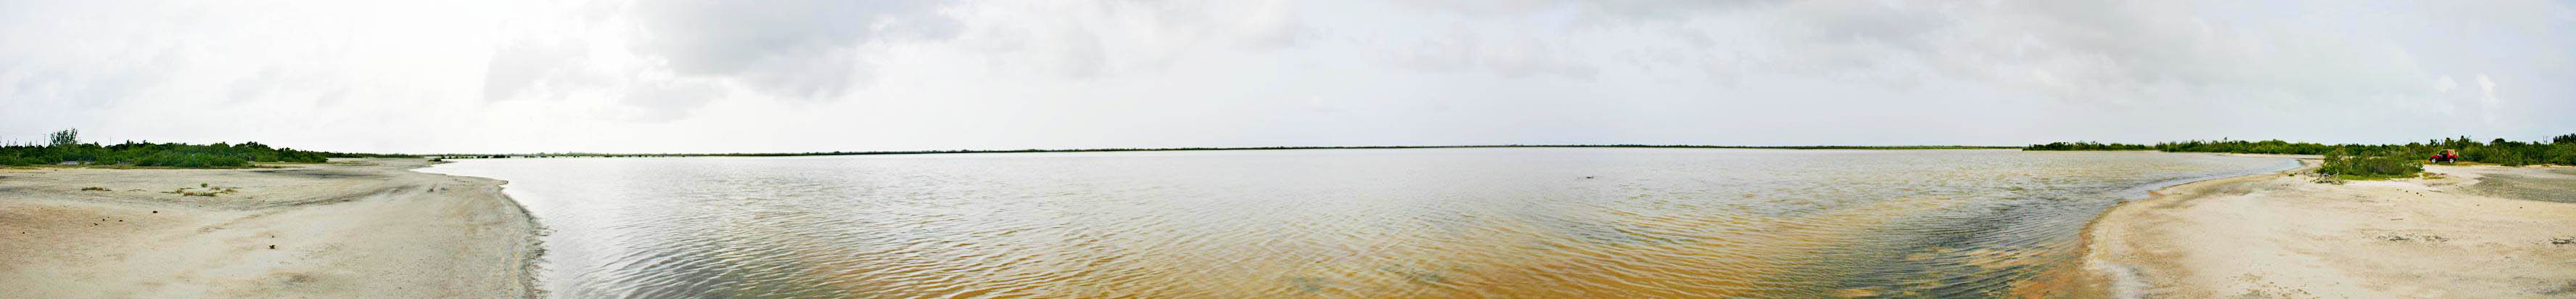 Flamingo Pond, Anegada